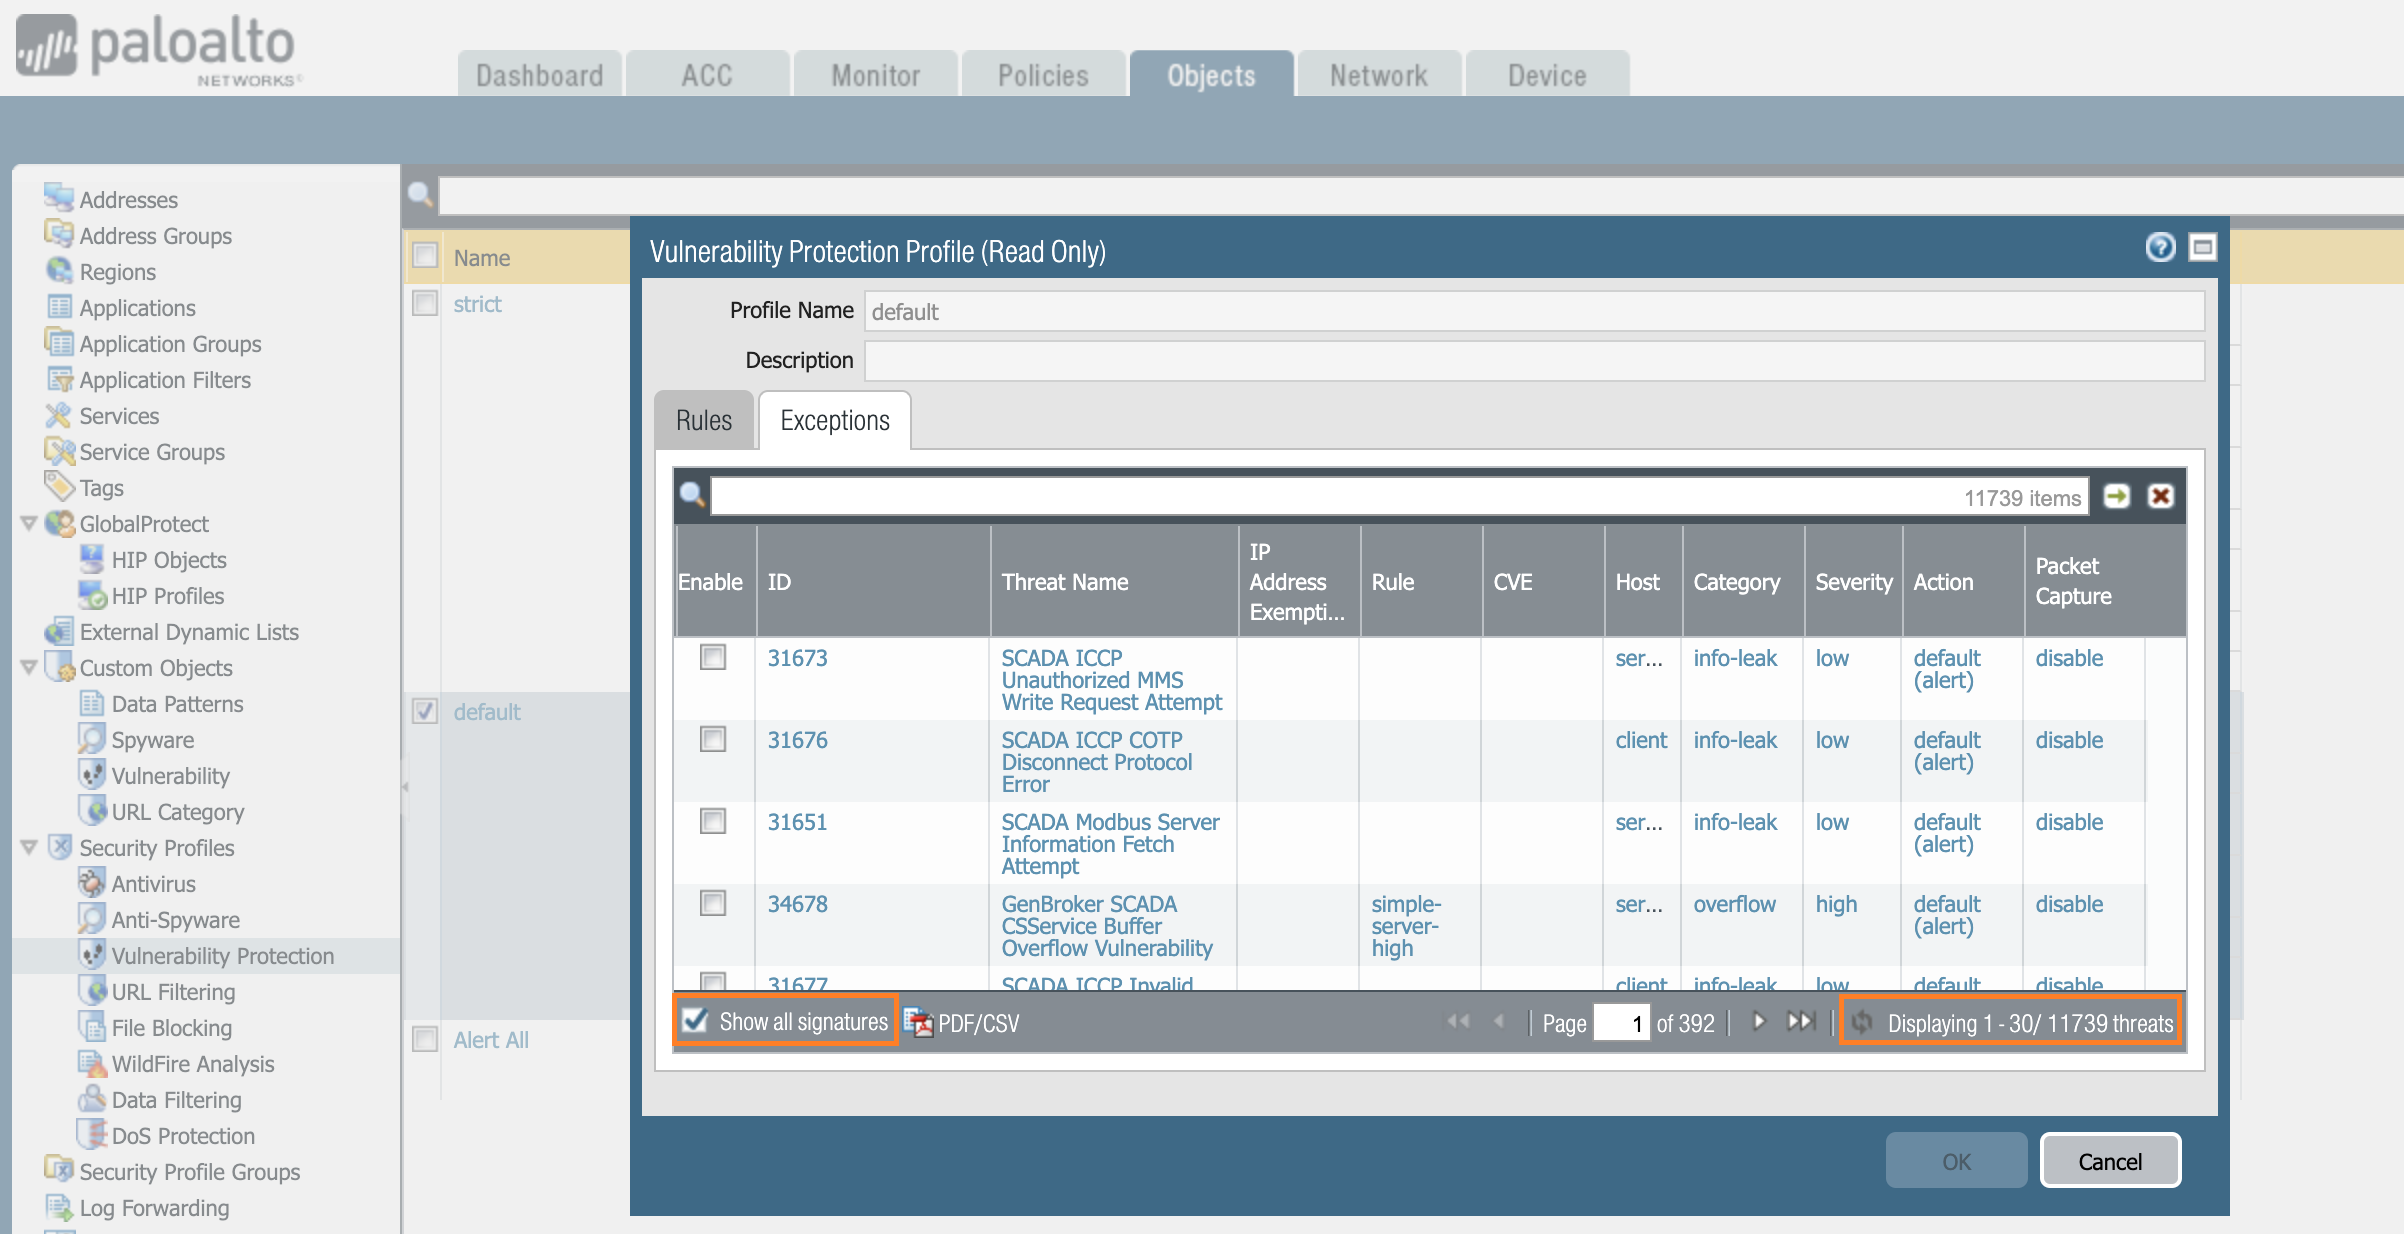 Palo Alto Networks Knowledgebase: How to Export all